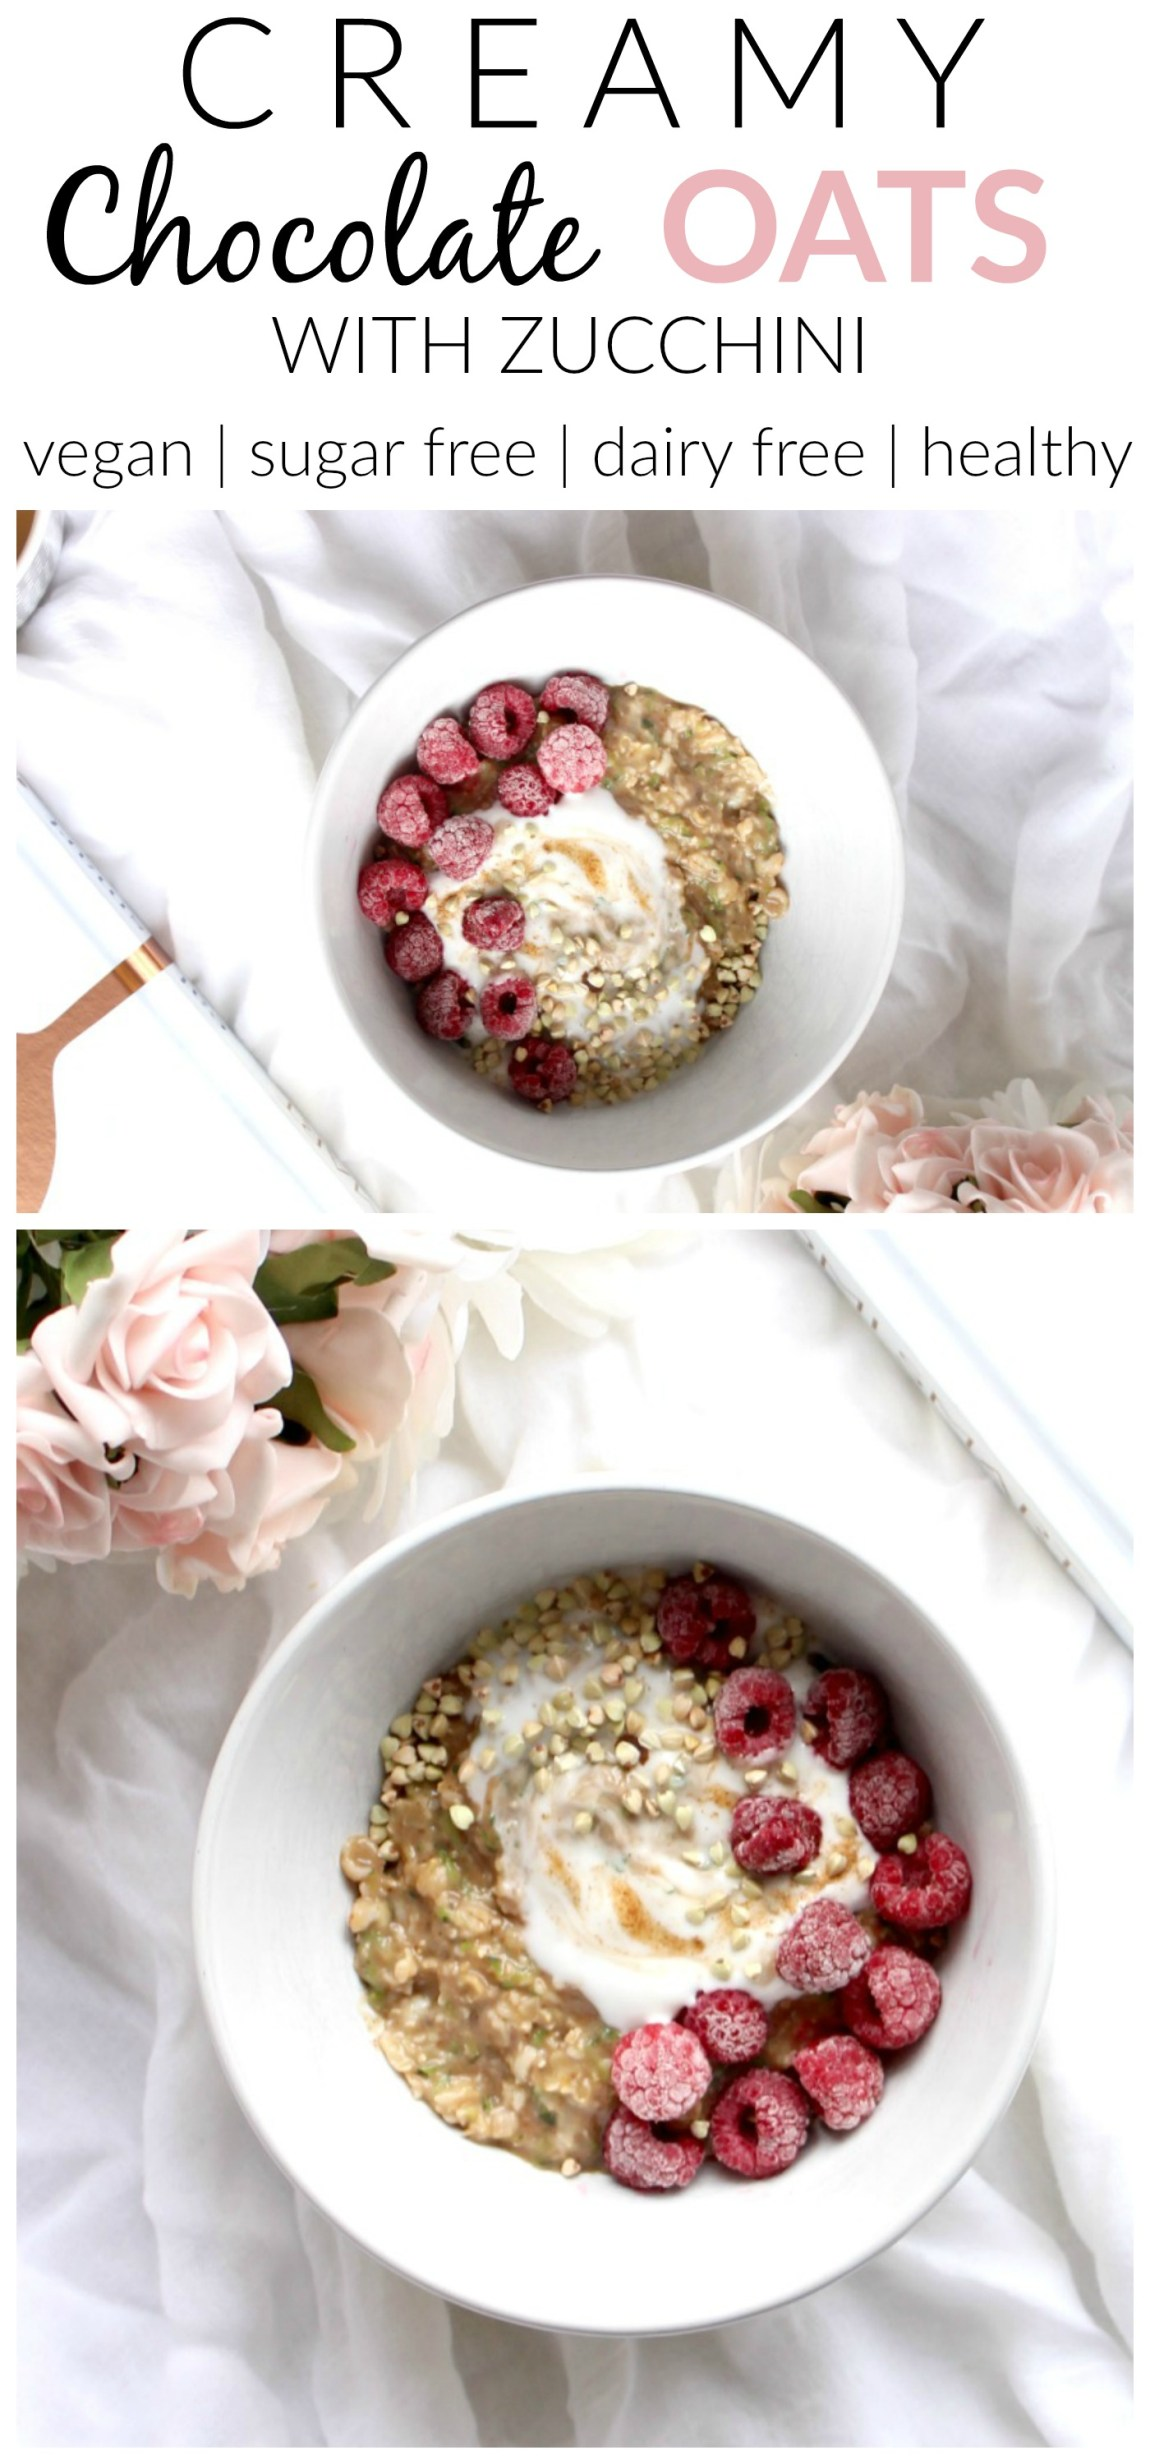 Nothing quite beats a dreamy bowl of creamy chocolate oats with zucchini in the morning. Super delicious, super nourishing and not as weird as it seems!